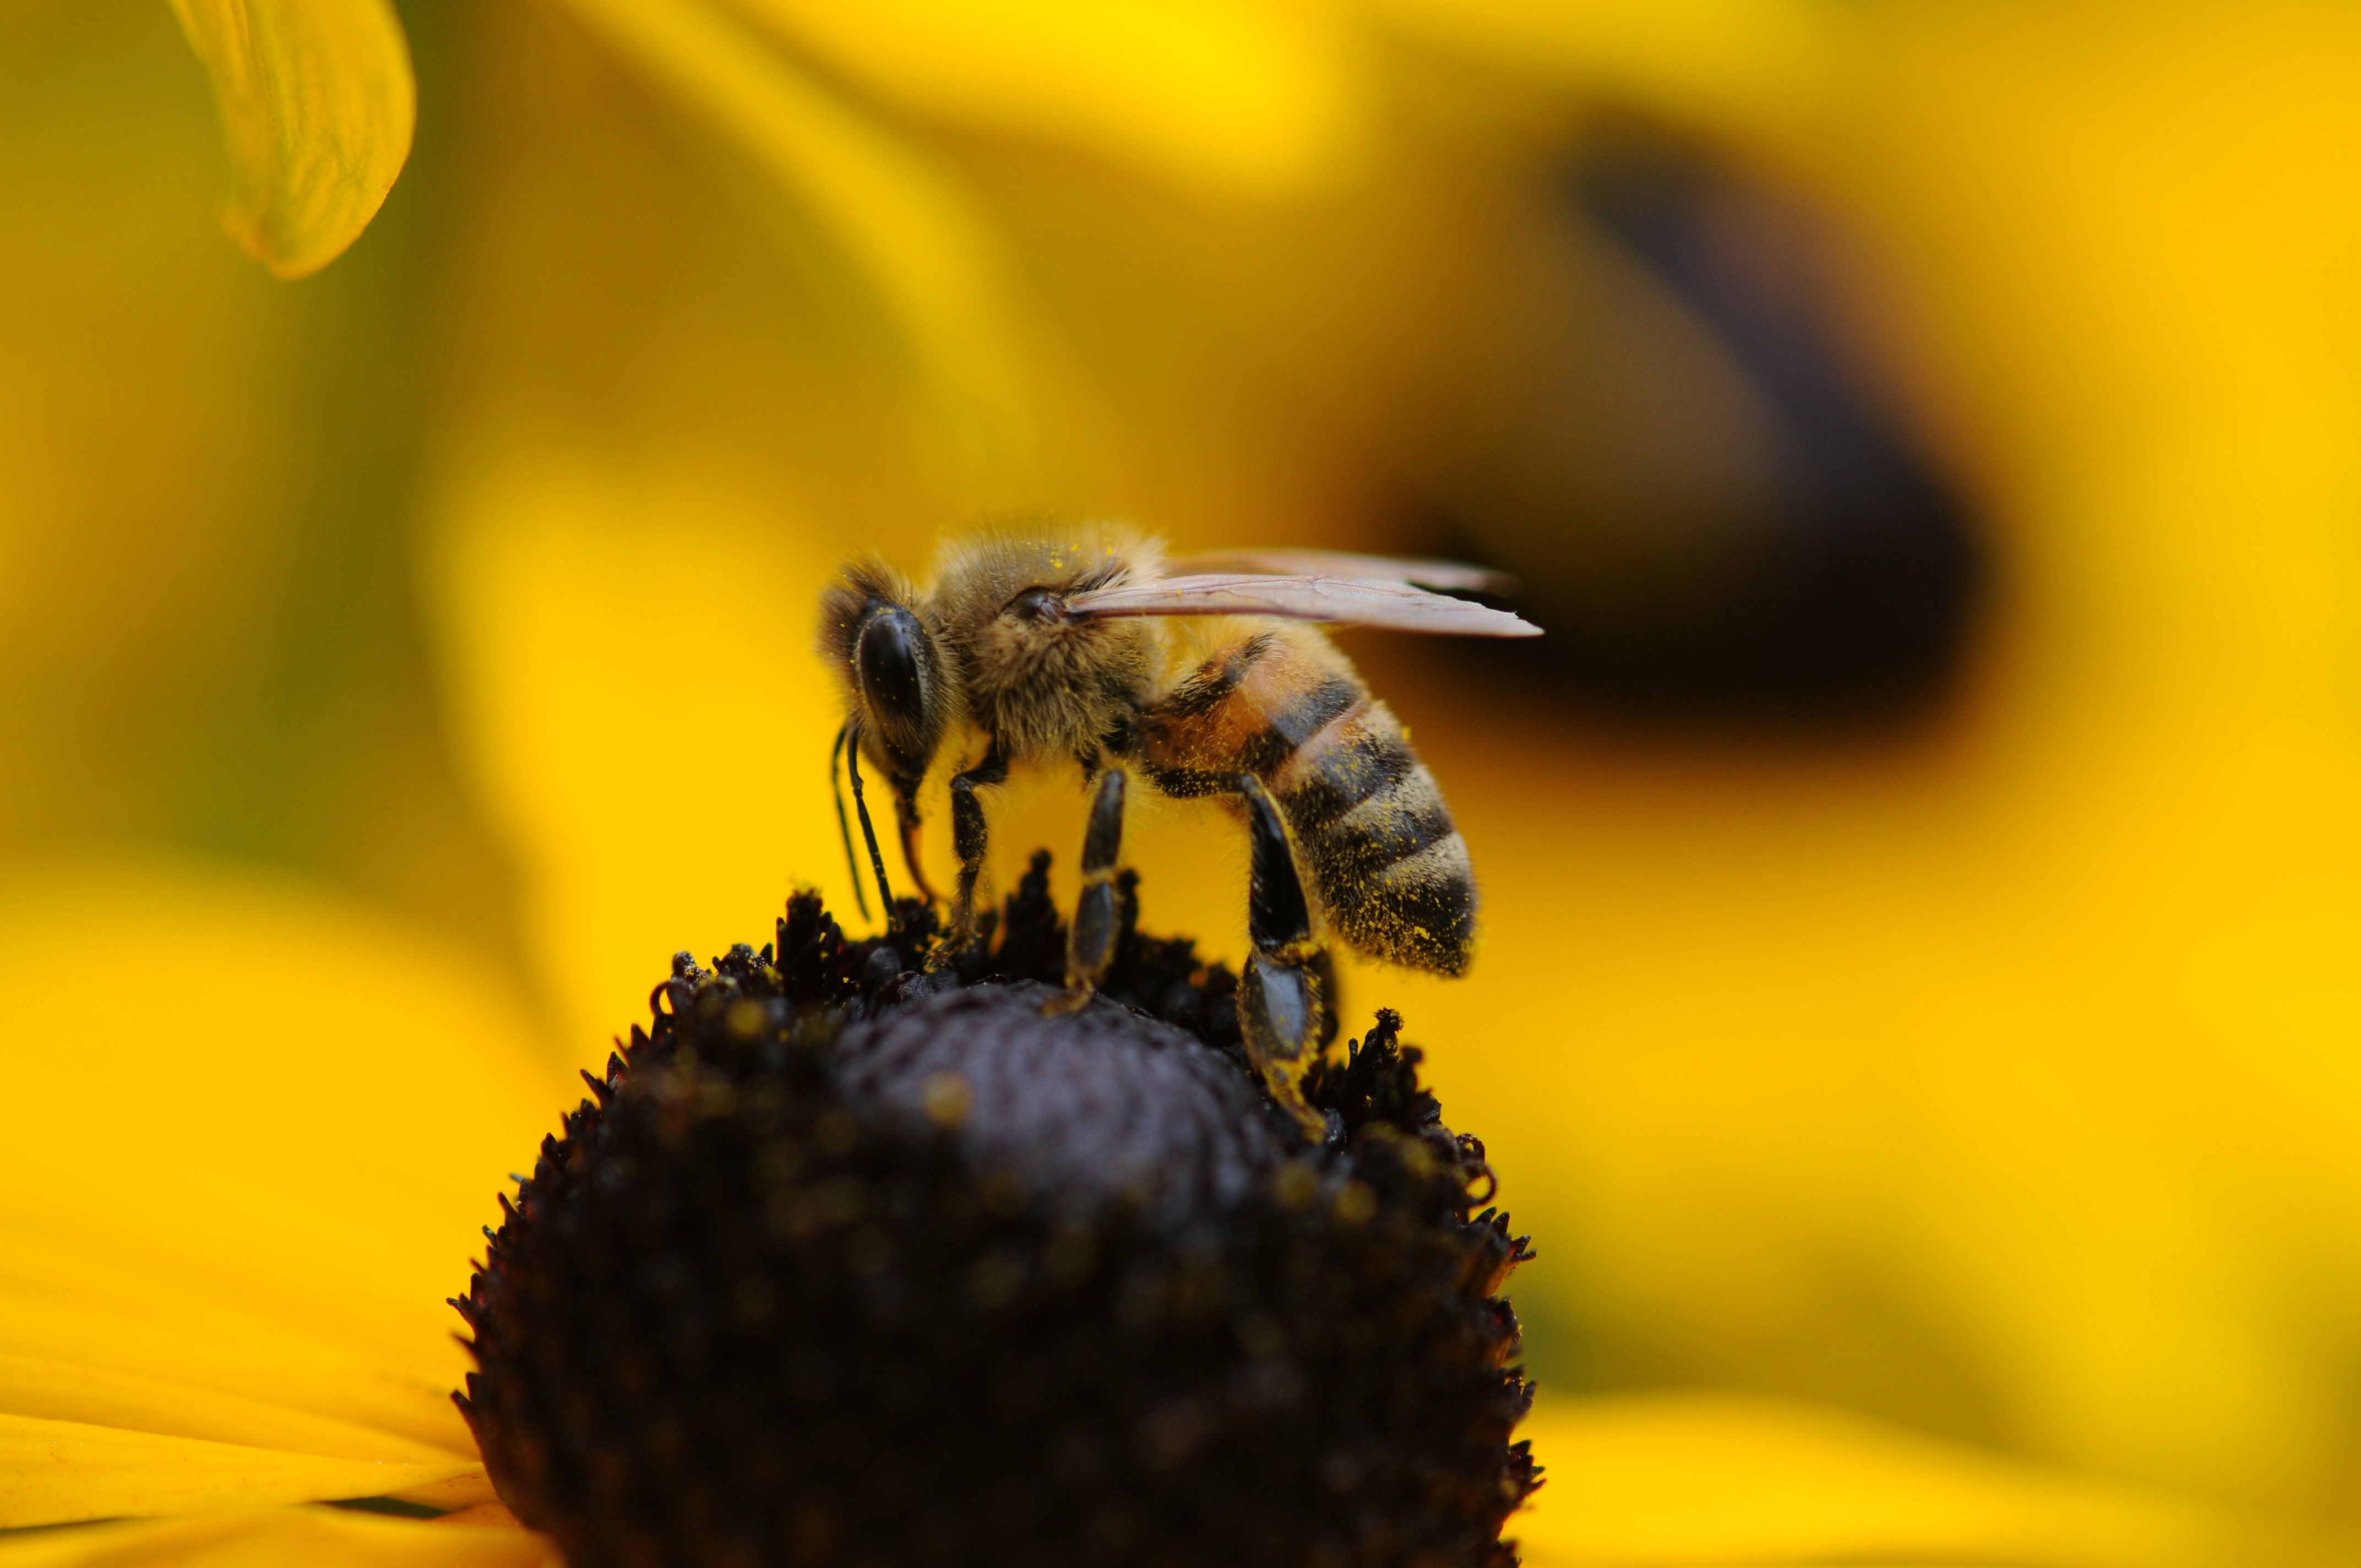 Tilt Shift Lens Photography Of Yellow And Black Bee Free Stock Photo